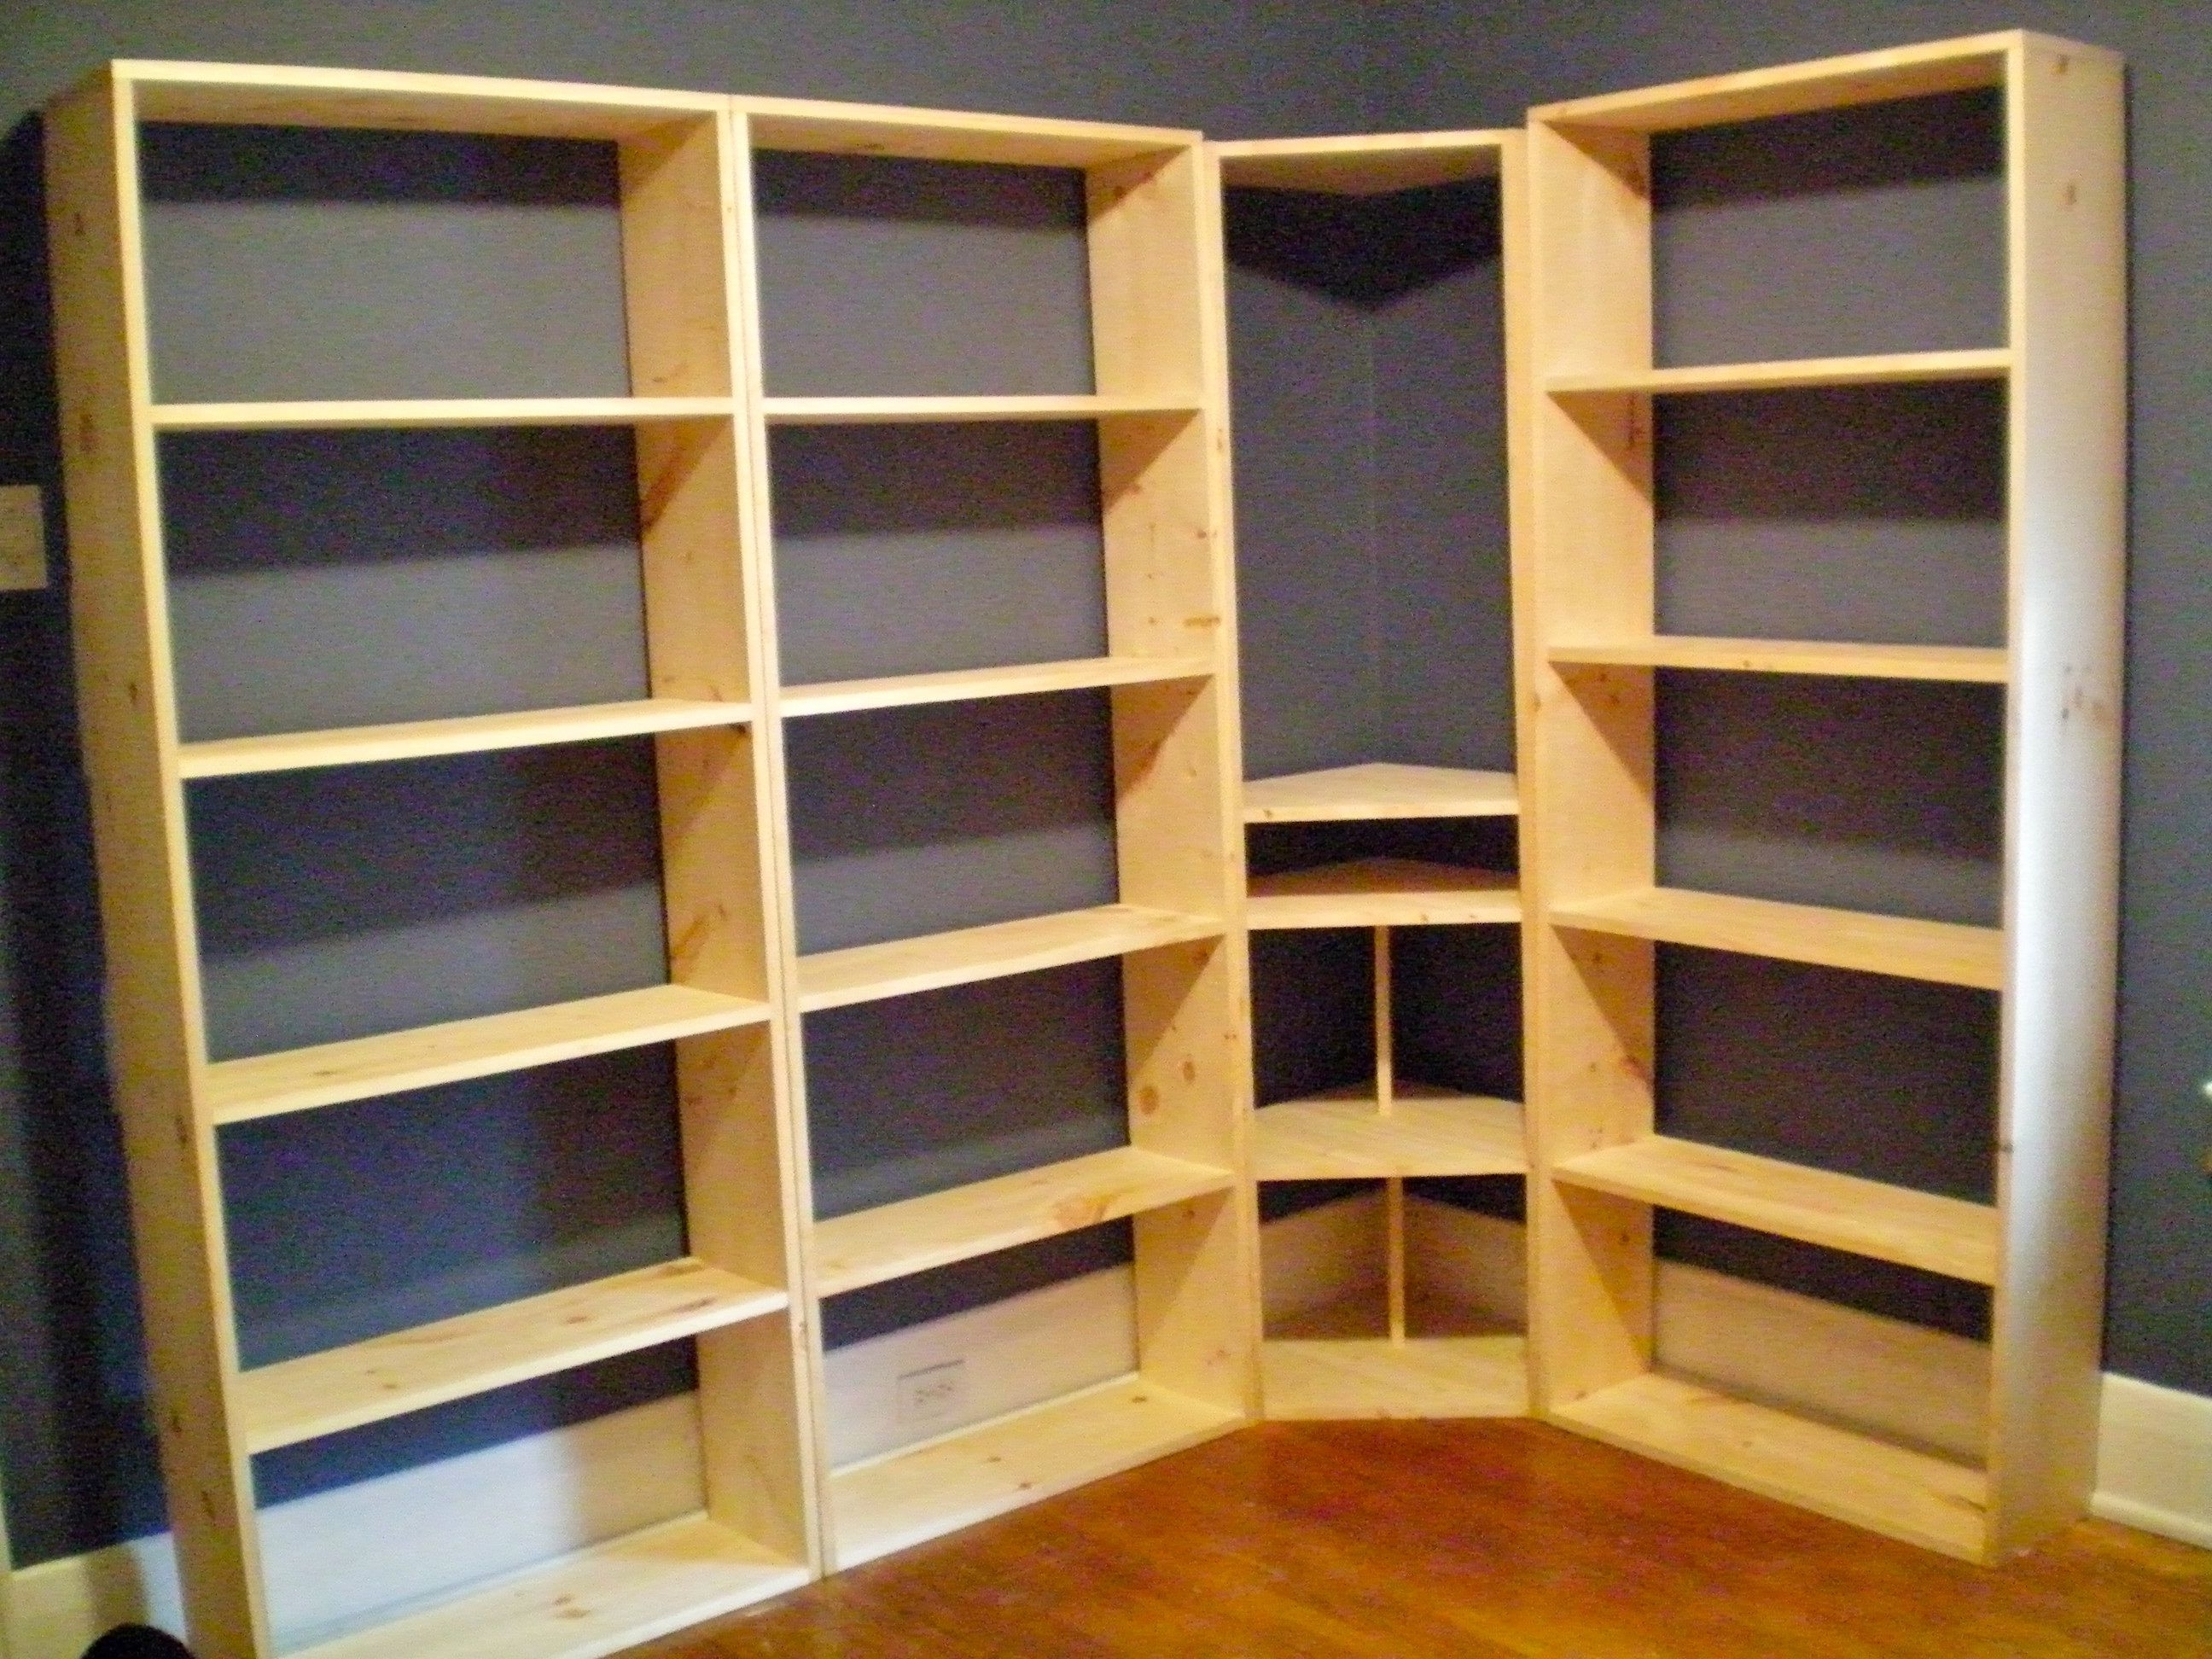 Bookshelf Wall Unit – Diy Projects Throughout Trendy Whole Wall Shelving (View 1 of 15)